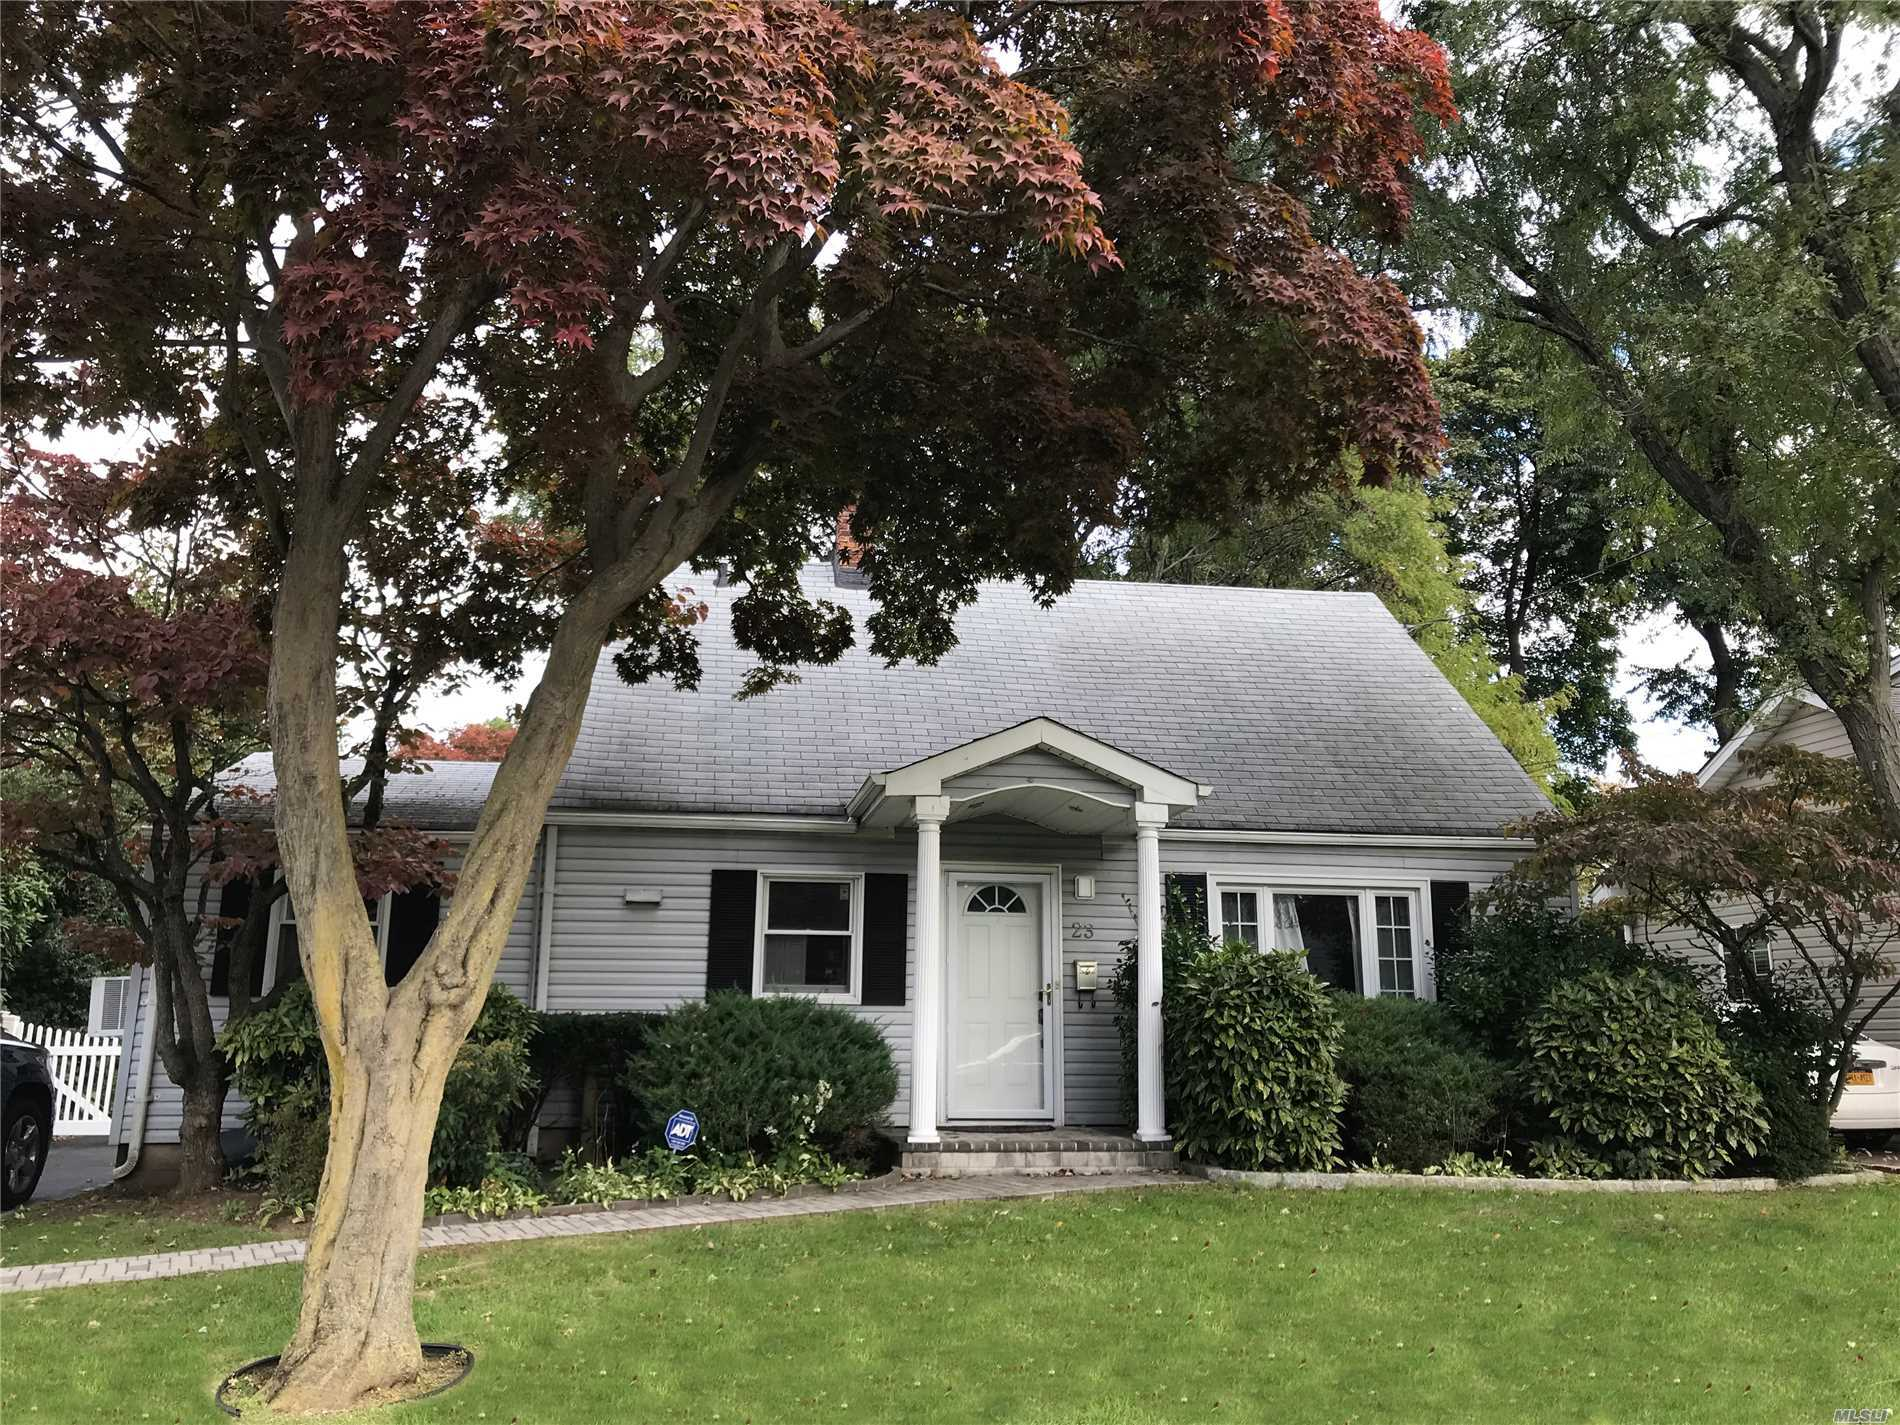 Lovely, Renovated, Charming Home With Lots Of Curb Appeal On A Tree Lined Street. Updated Windows, Doors, Baths, Eik With Sliding Glass Doors That Lead To Over-Sized Deck & Lovely Fenced In Property .Mid Block Location. Large Garage. New Oil Burner & Hot Water Heater. Taxes Have Been Successfully Grieved 16.9%.!